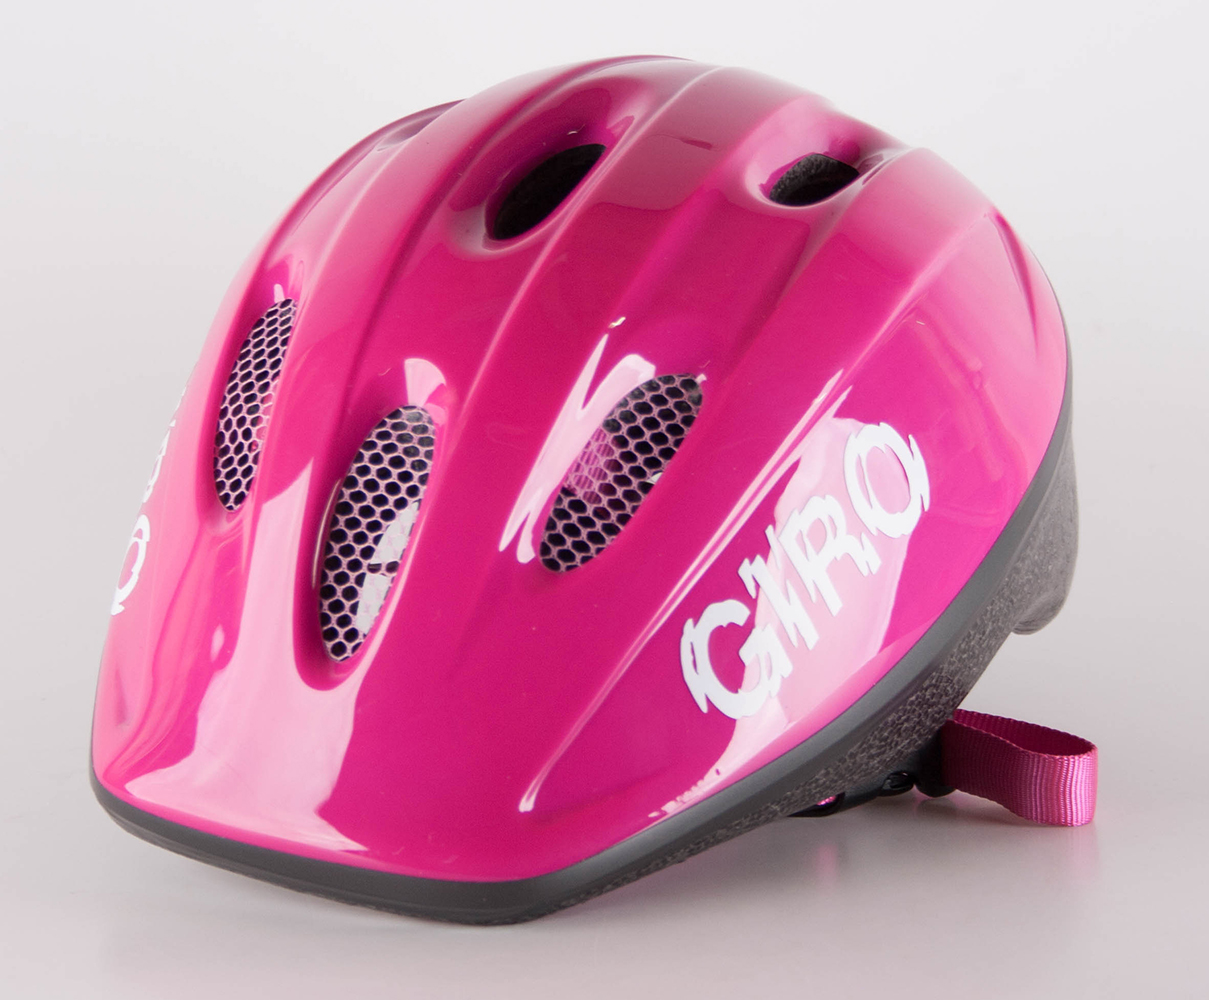 giro kinder fahrradhelm rodeo helm pink one size 195 ebay. Black Bedroom Furniture Sets. Home Design Ideas